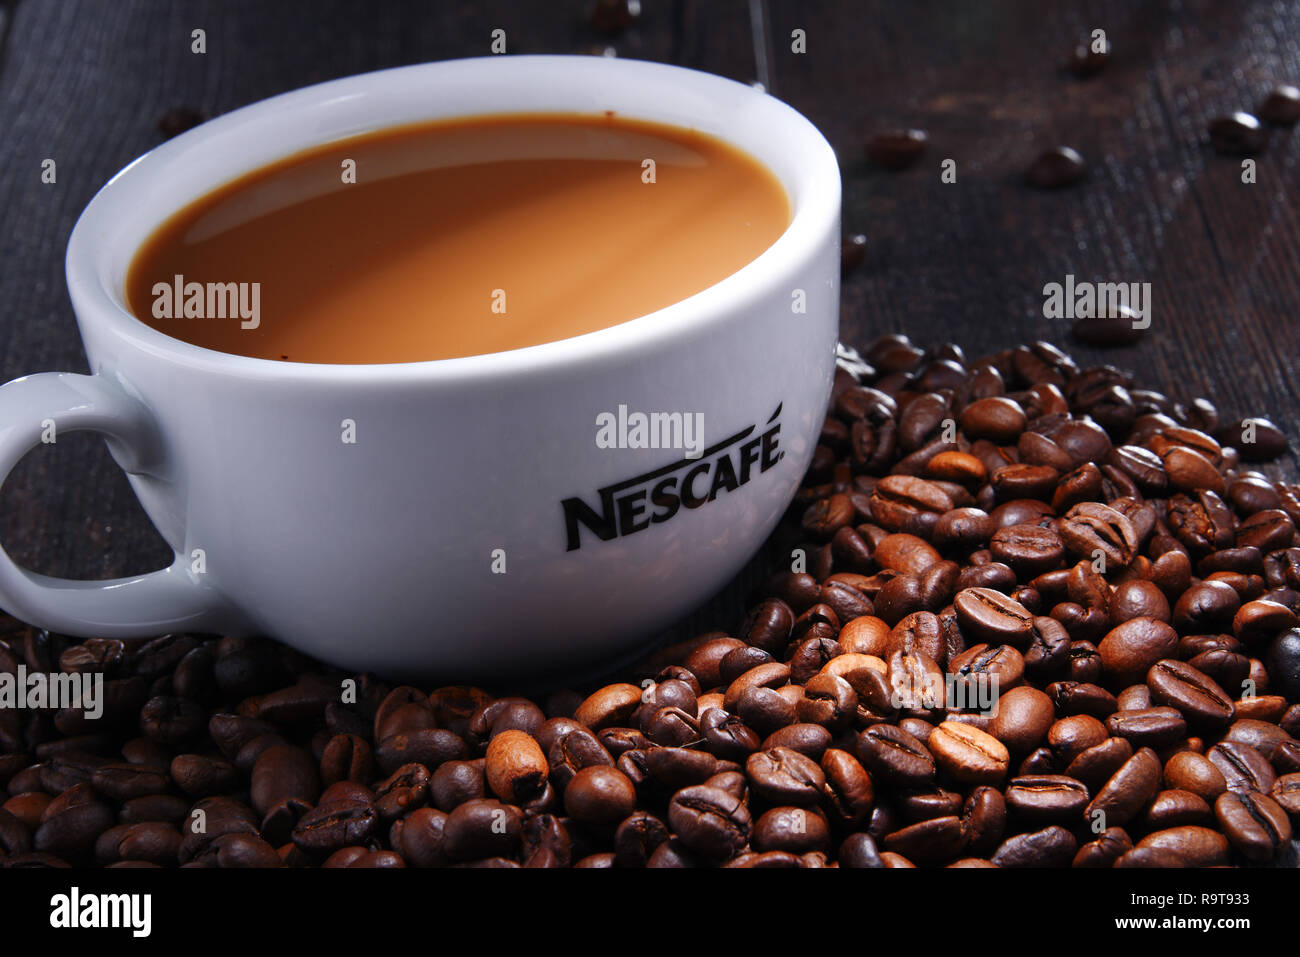 POZNAN, POLAND - AUG 3, 2018: Cup of Nescafe coffee, a brand of Swiss coffee made by Nestle, introduced in 1938 - Stock Image